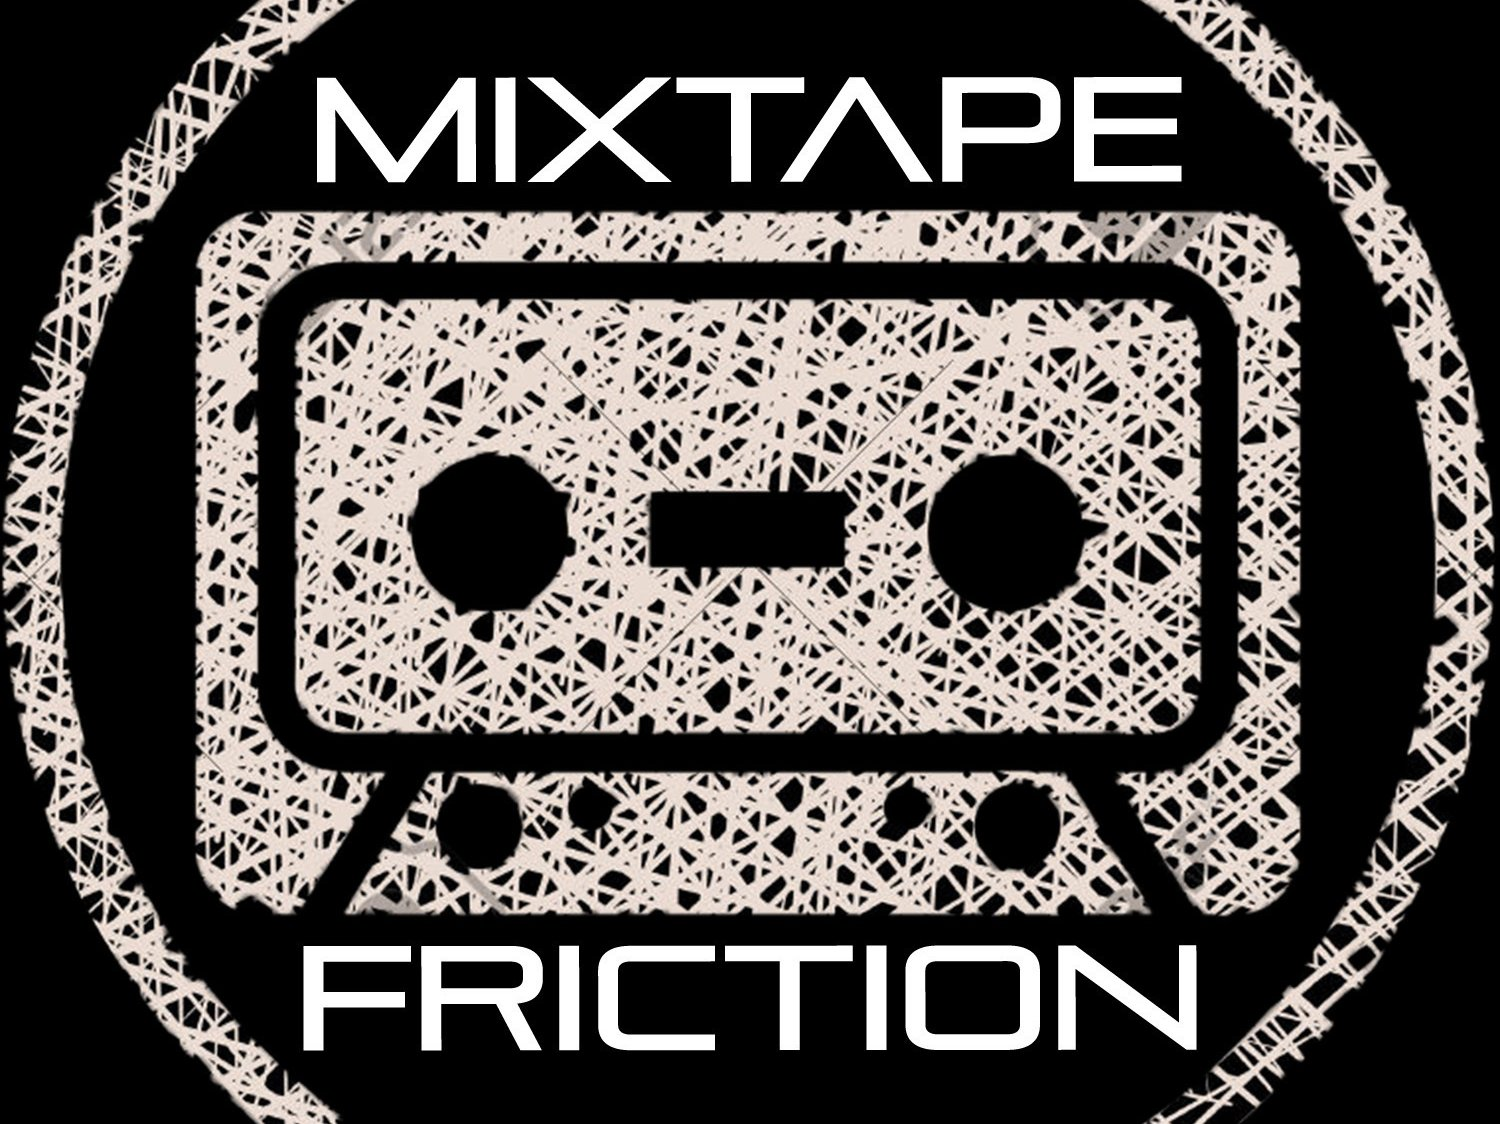 Image for Mixtape Friction